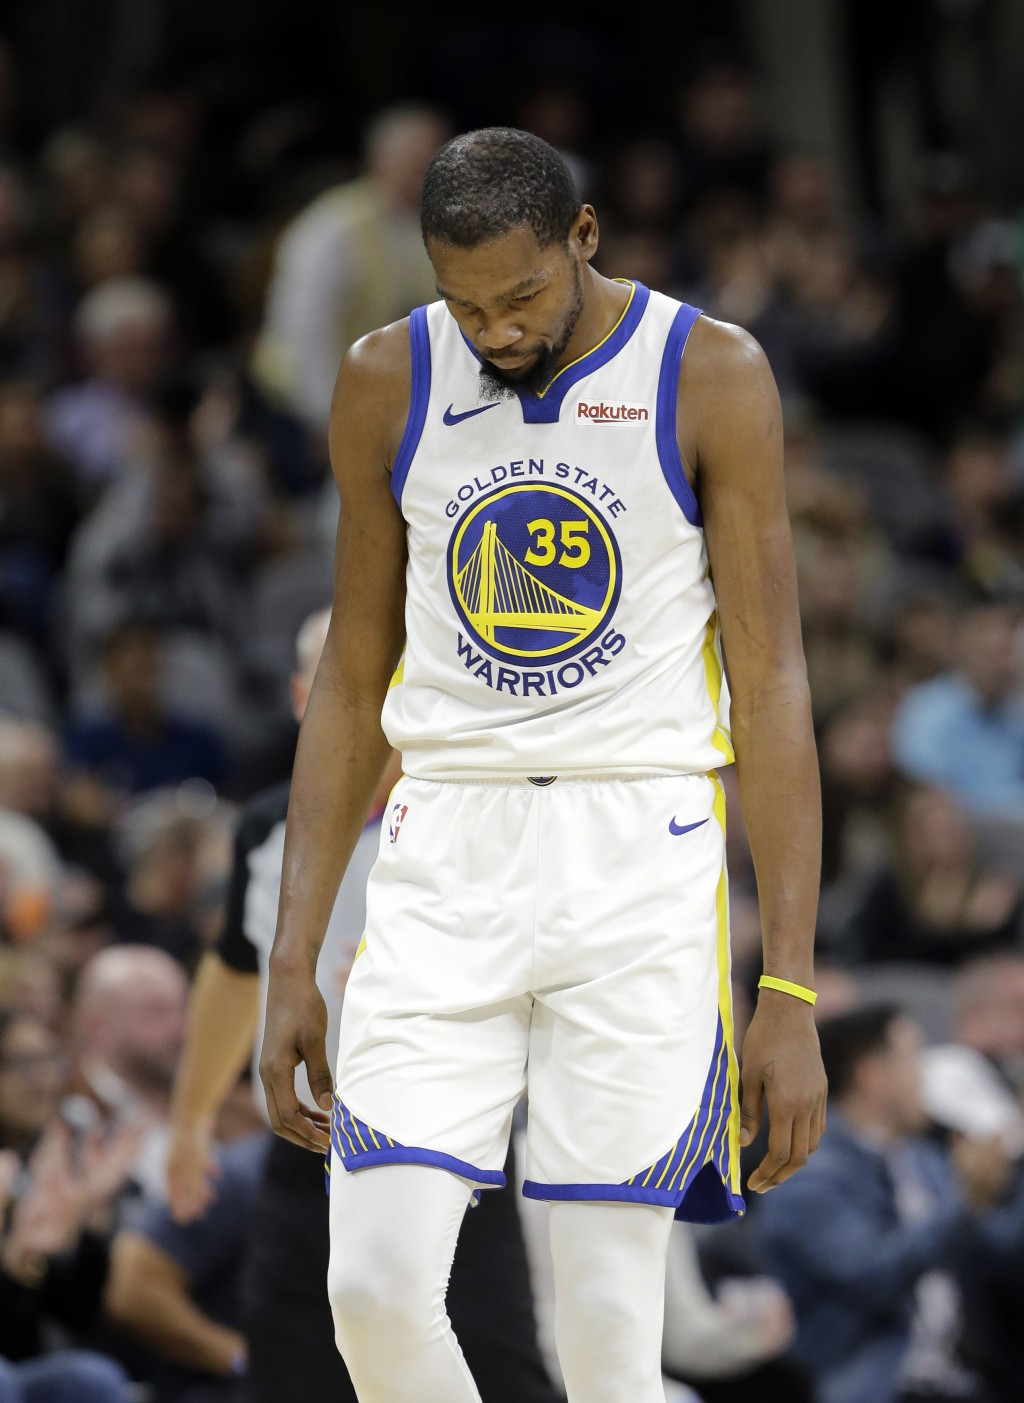 Golden State Warriors forward Kevin Durant (35) walks down court after a play during the second half of an NBA basketball game against the San Antonio